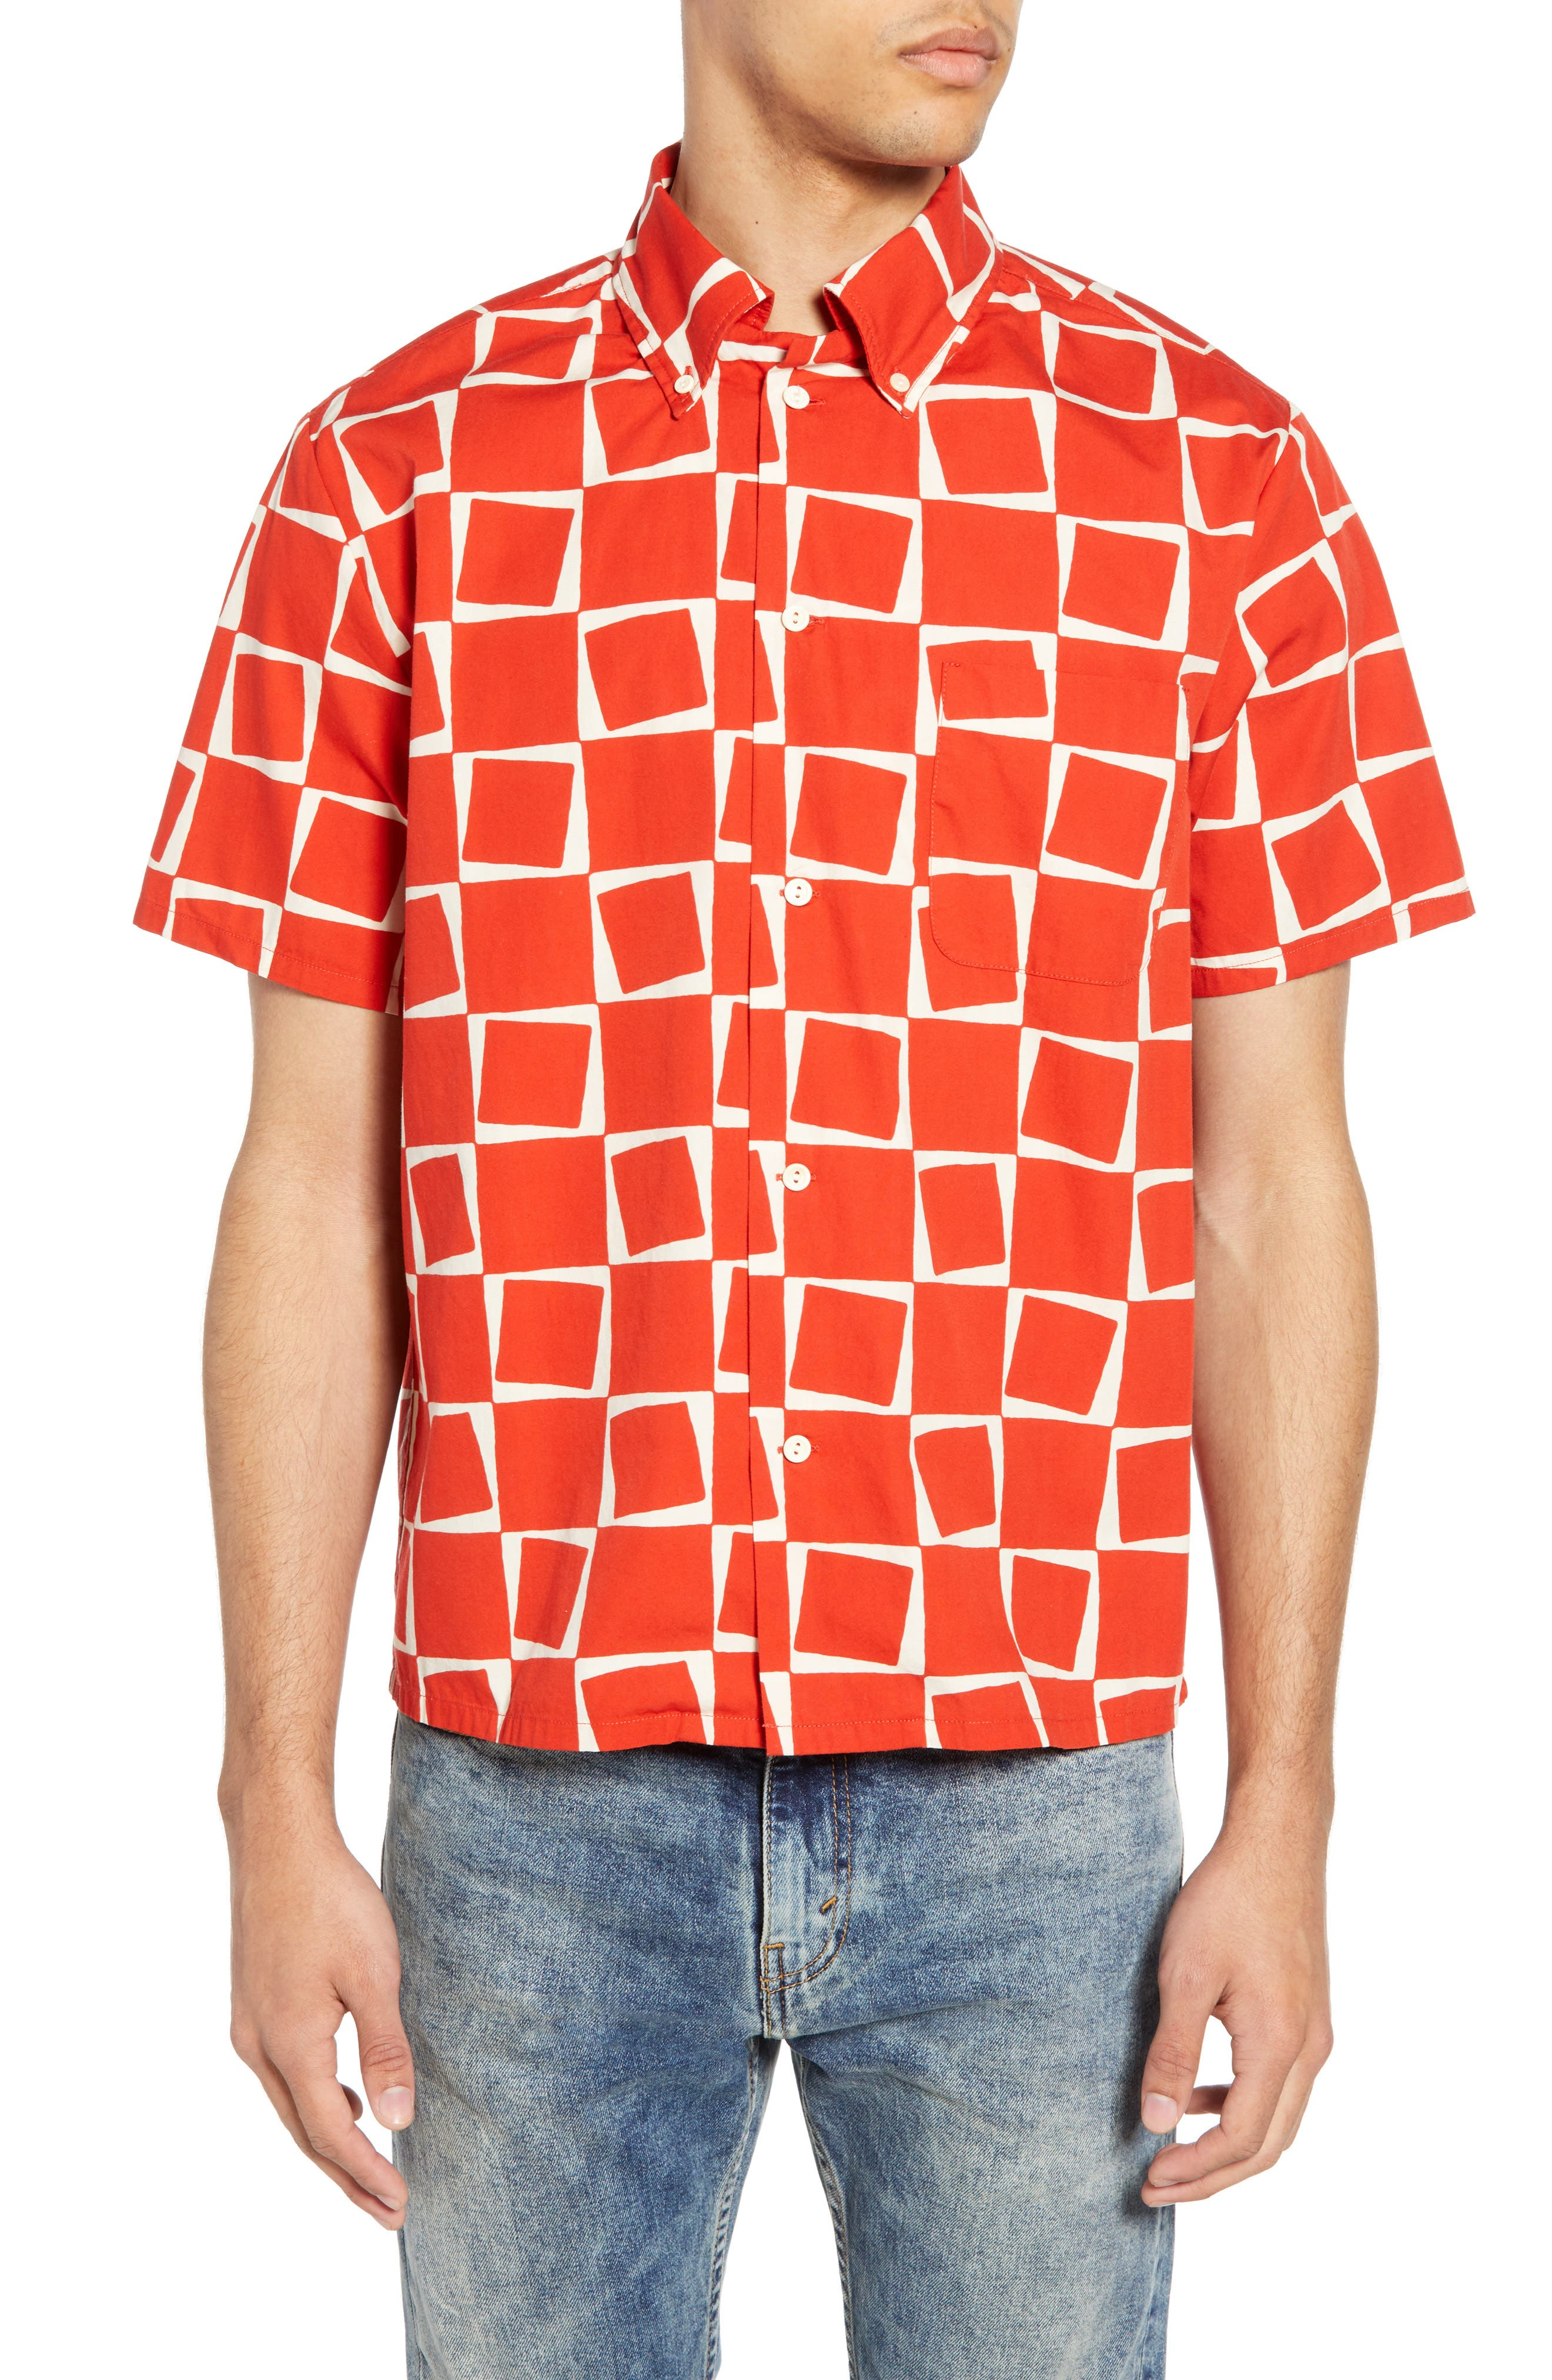 LEVI'S<SUP>®</SUP> VINTAGE CLOTHING 1950s Regular Atomic Square Woven Shirt, Main, color, 600